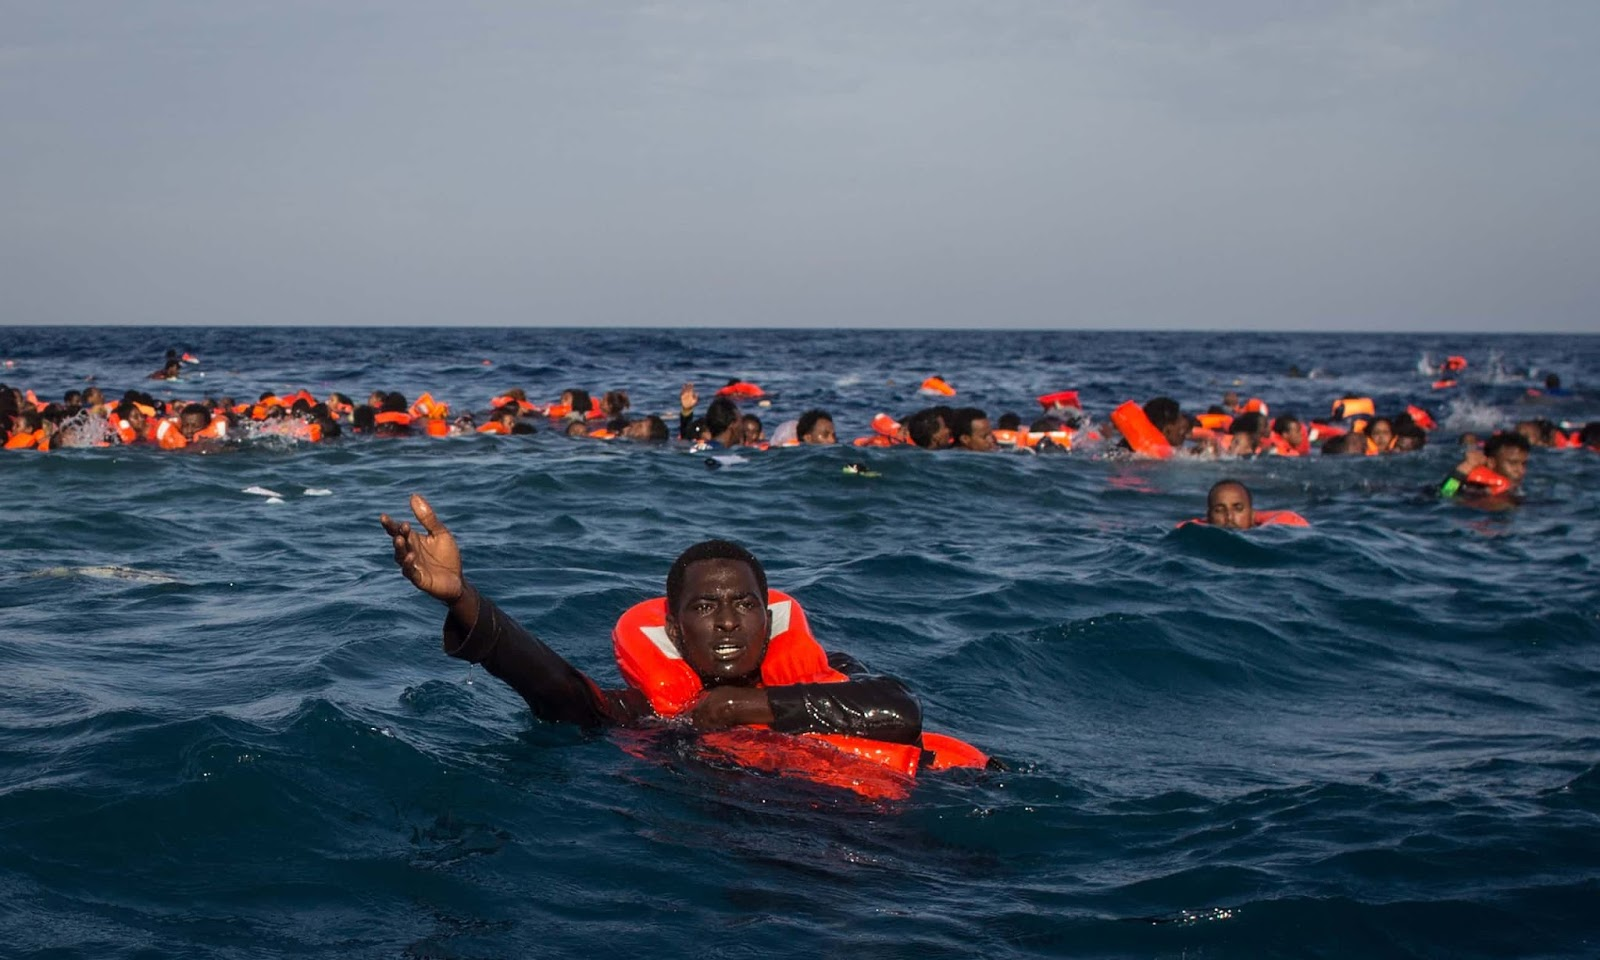 25 Of The Most Intriguing Pictures Of 2017 - Refugees from a capsized boat off Lampedusa, Italy